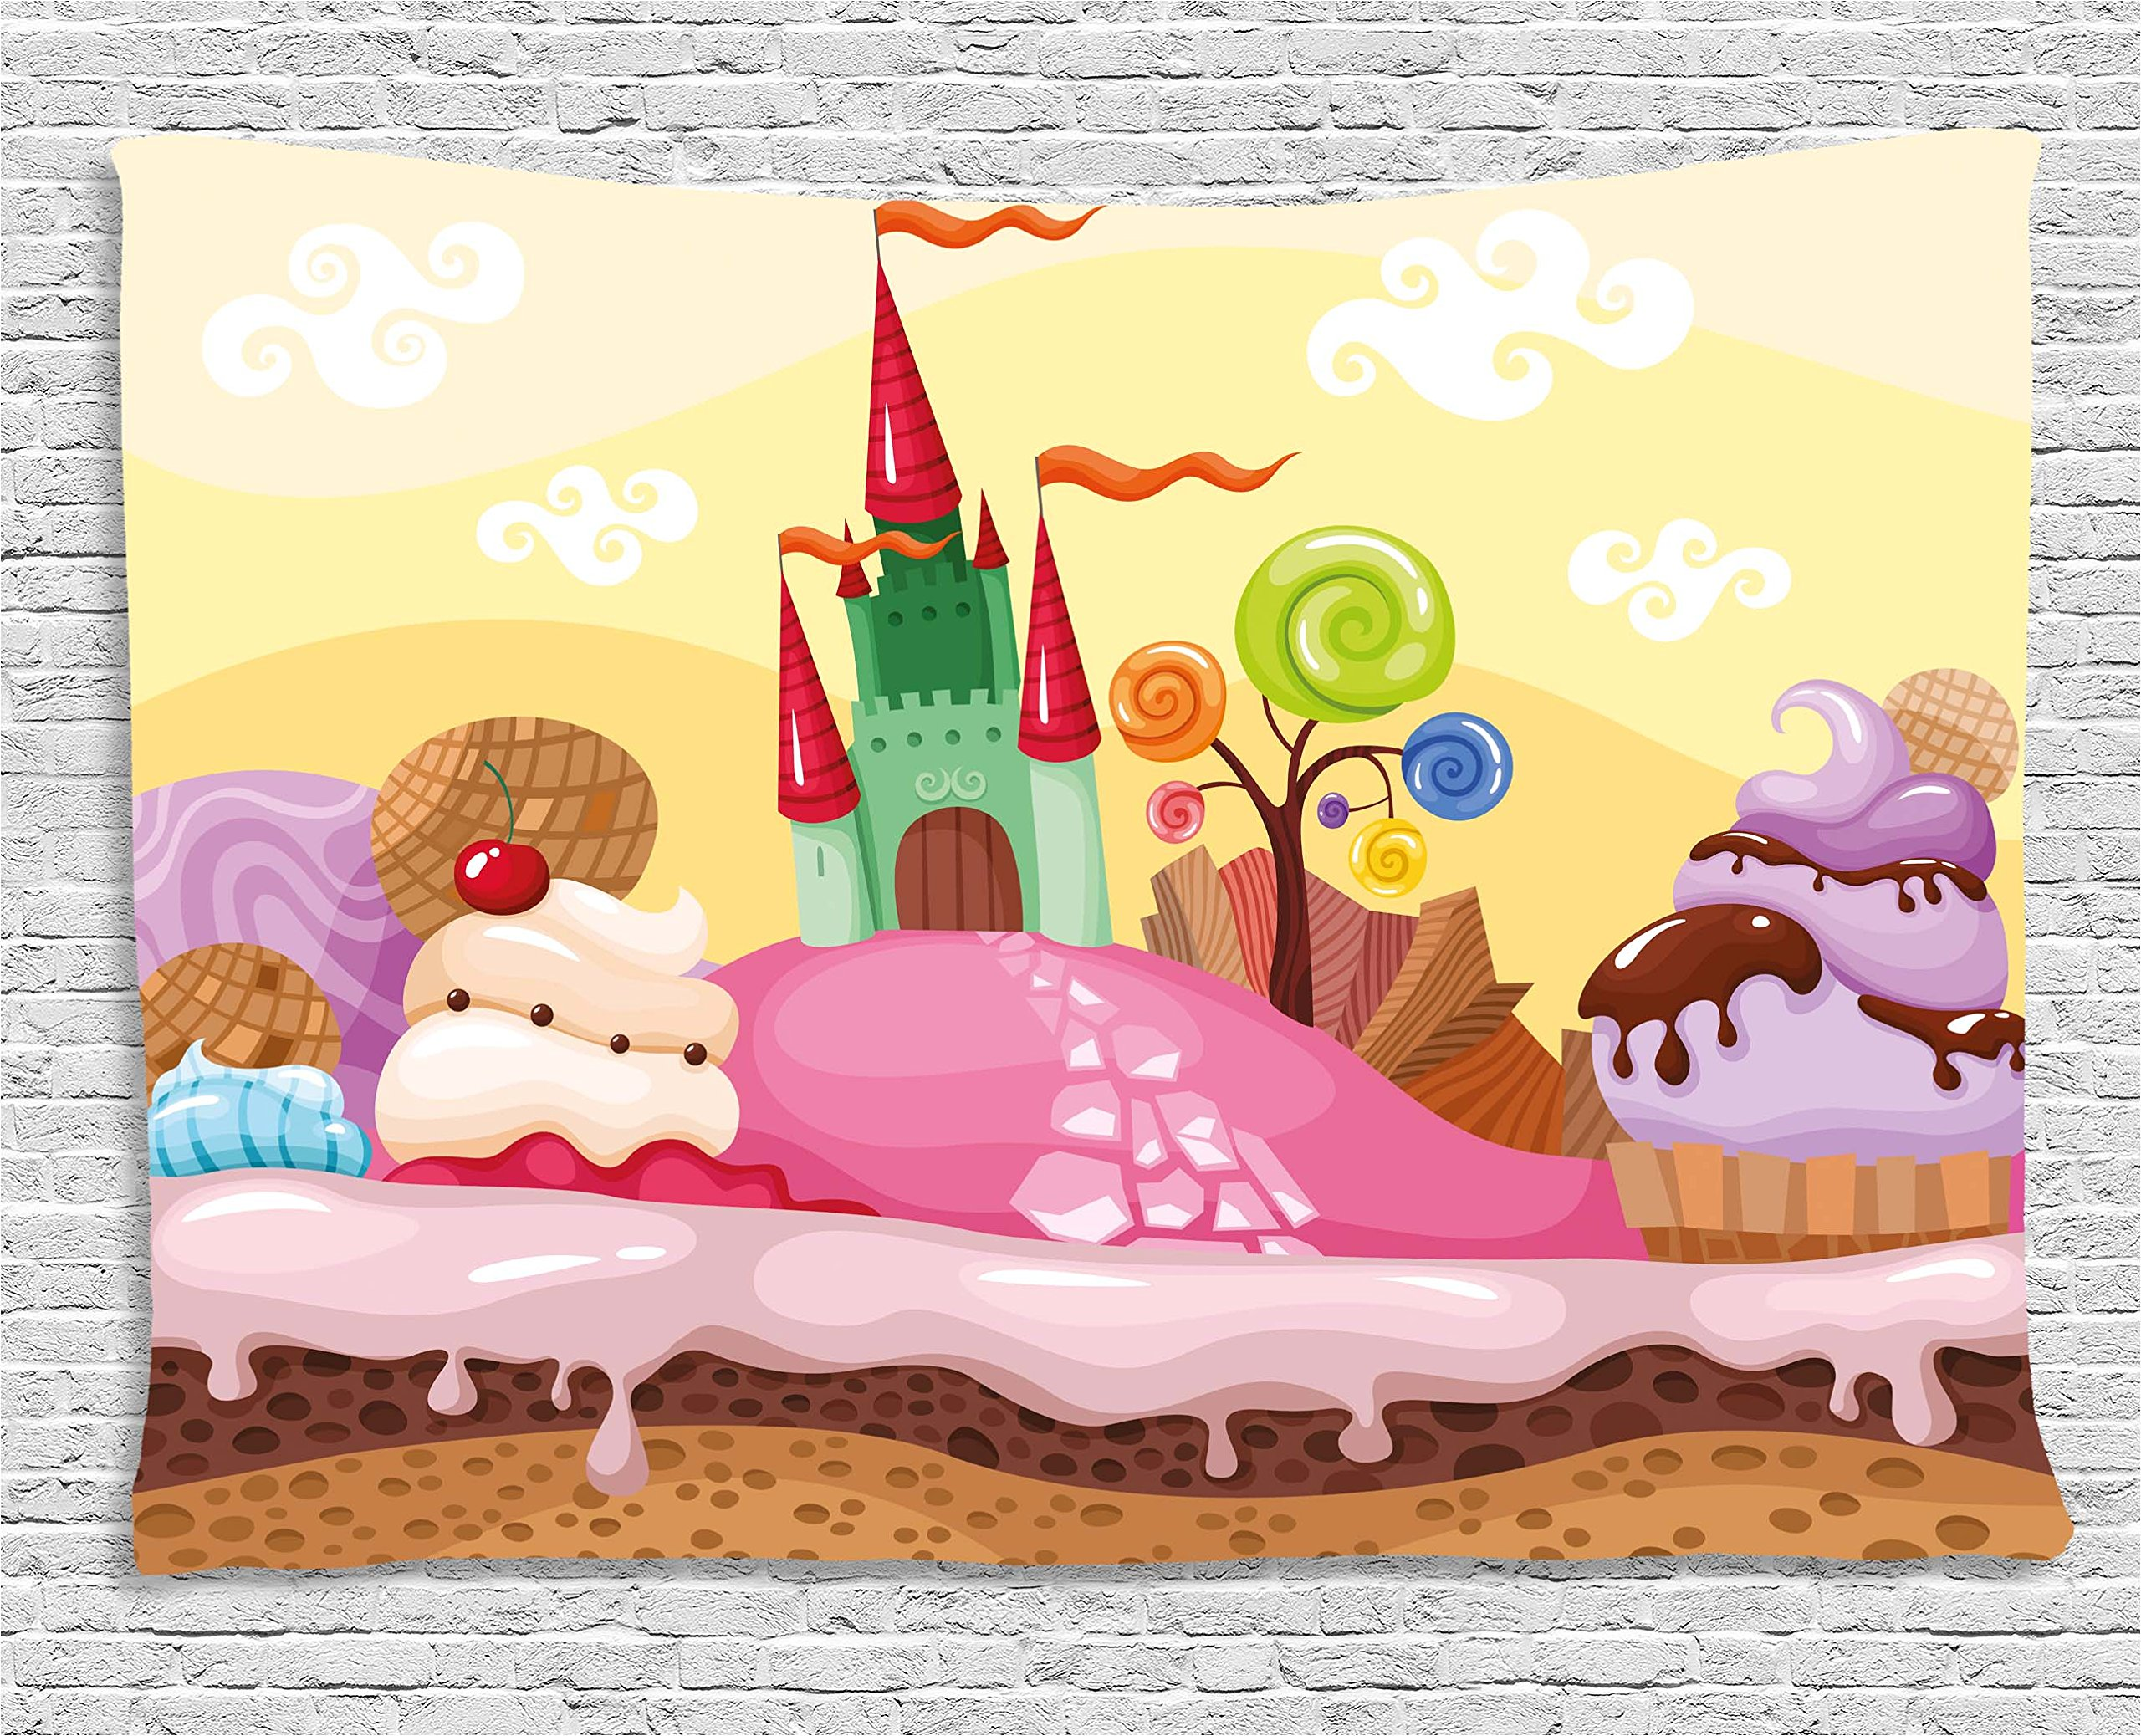 Ambesonne Cartoon Decor Tapestry, Kids Sweet Castle Landscape with Donuts Muffins Ice Cream Nursery Image, Wall Hanging for Bedroom Living Room Dorm, 80 W X 60 L Inches, Sand Brown Pink